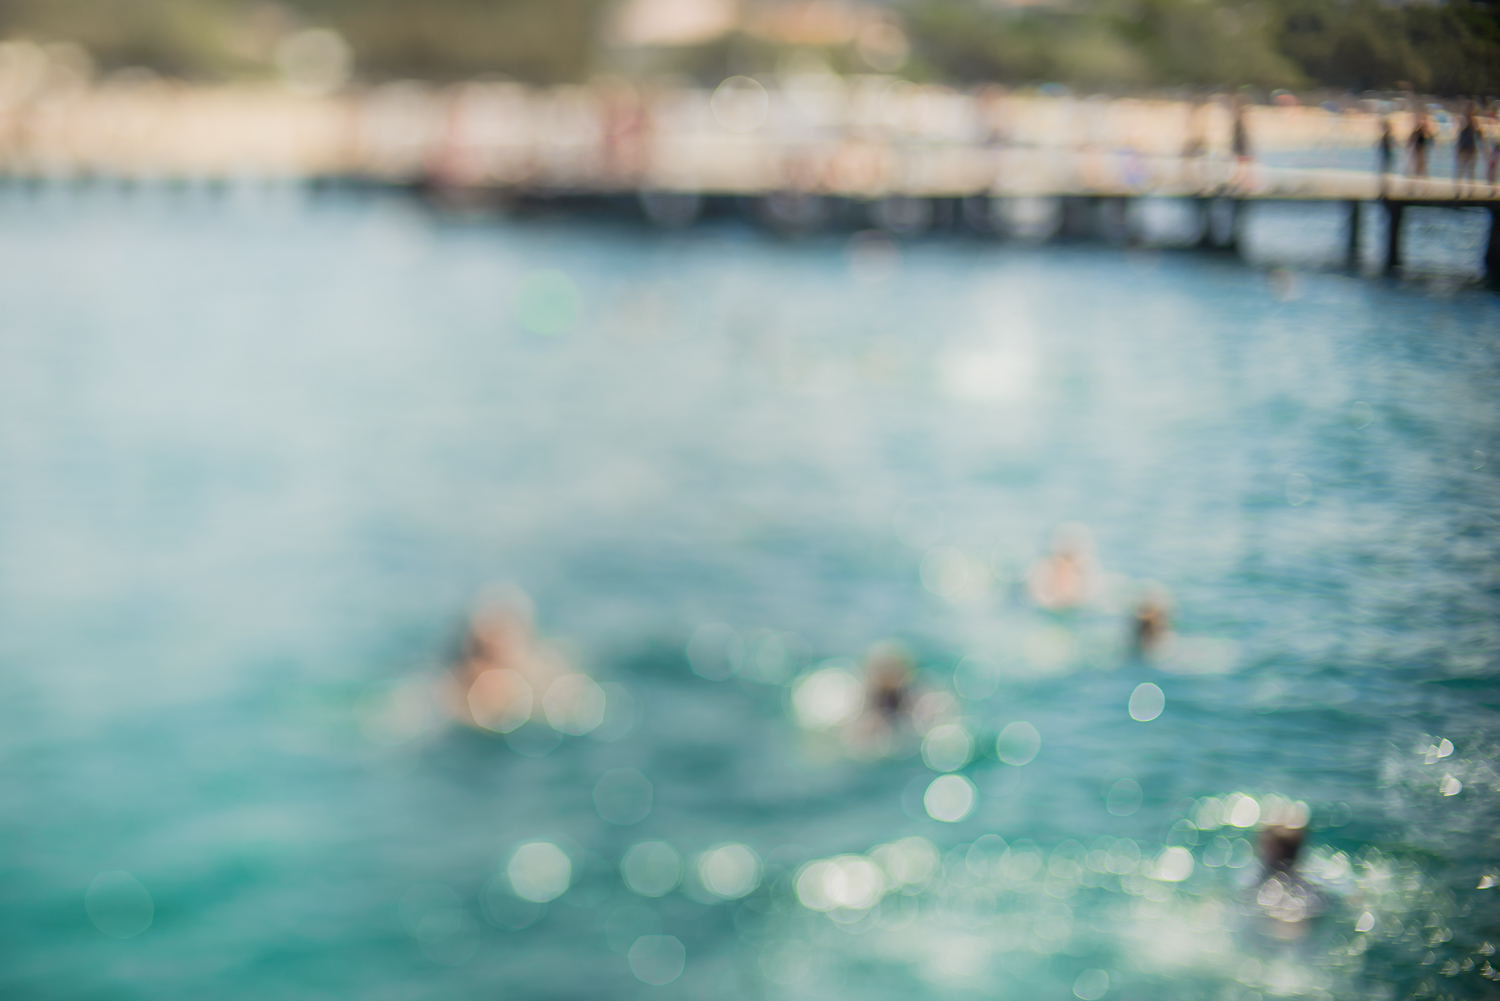 Freelensed image of the Boardwalk at Balmoral Beach, Sydney, by Cindy Cavanagh